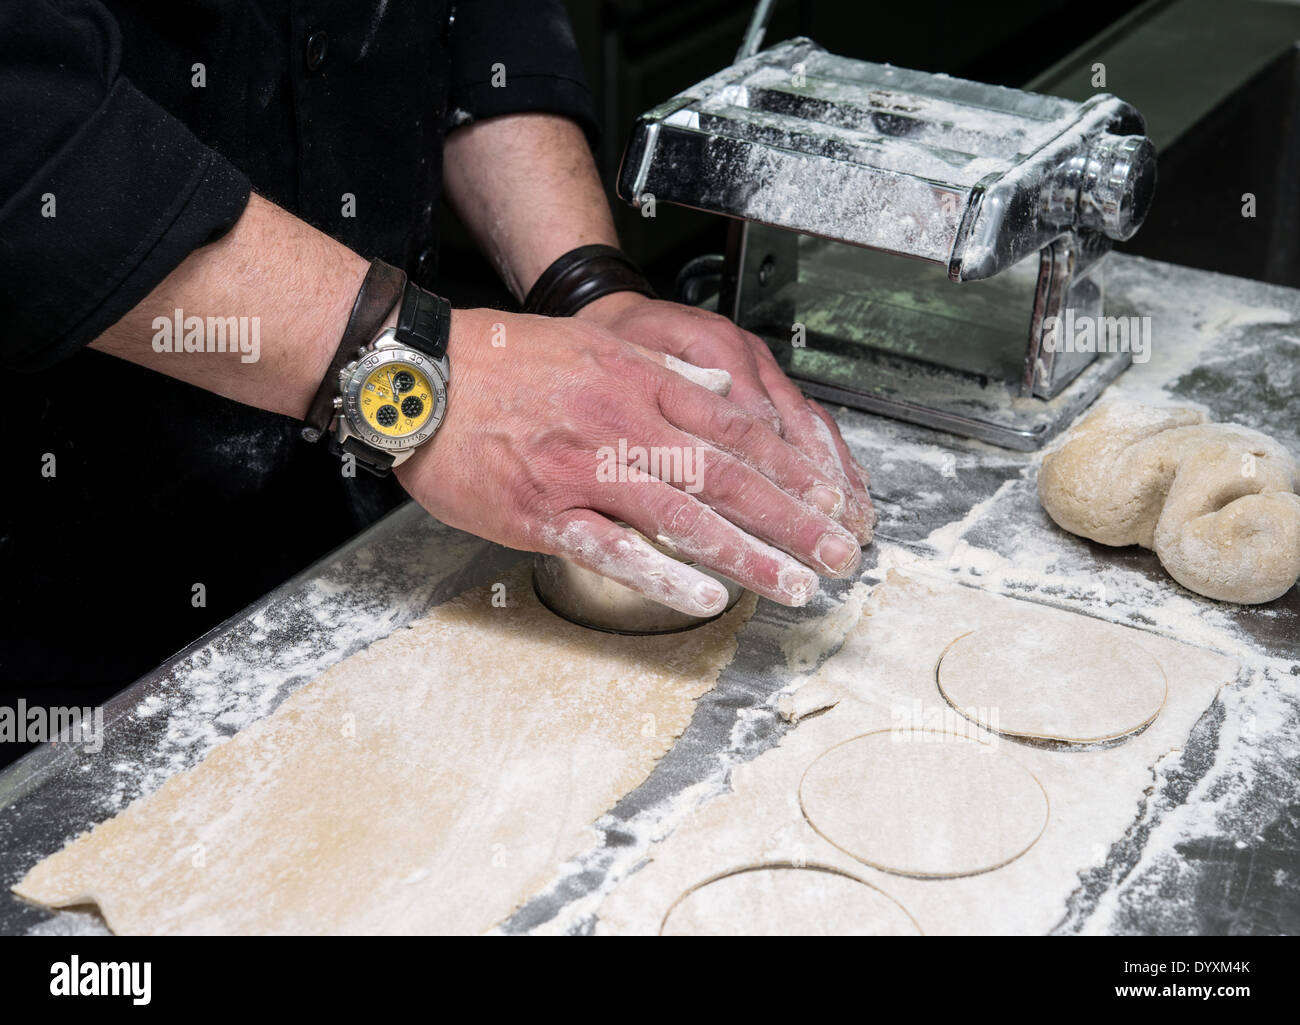 Making Tortellini pasta cutting to size - Stock Image